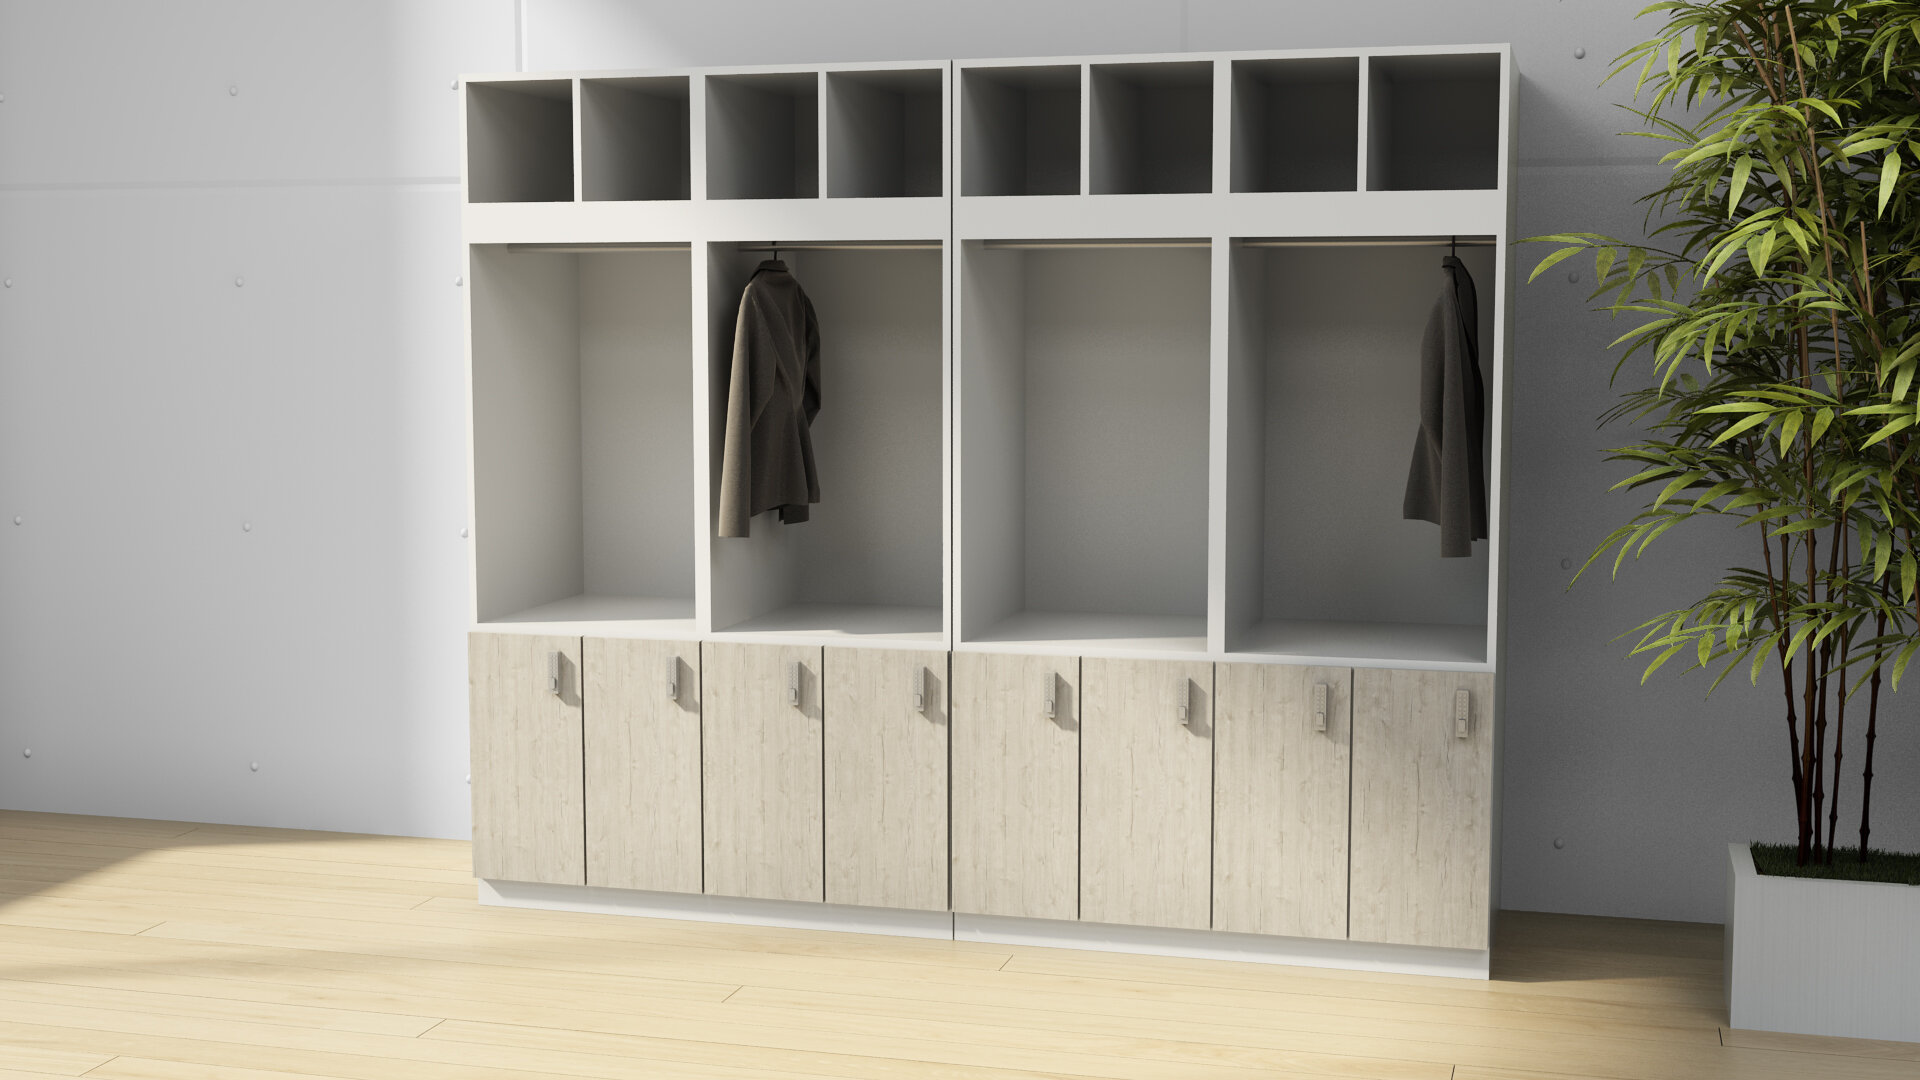 44188409_deskmakers_lockers_and_cubbies-01-typical_3a_b.jpg